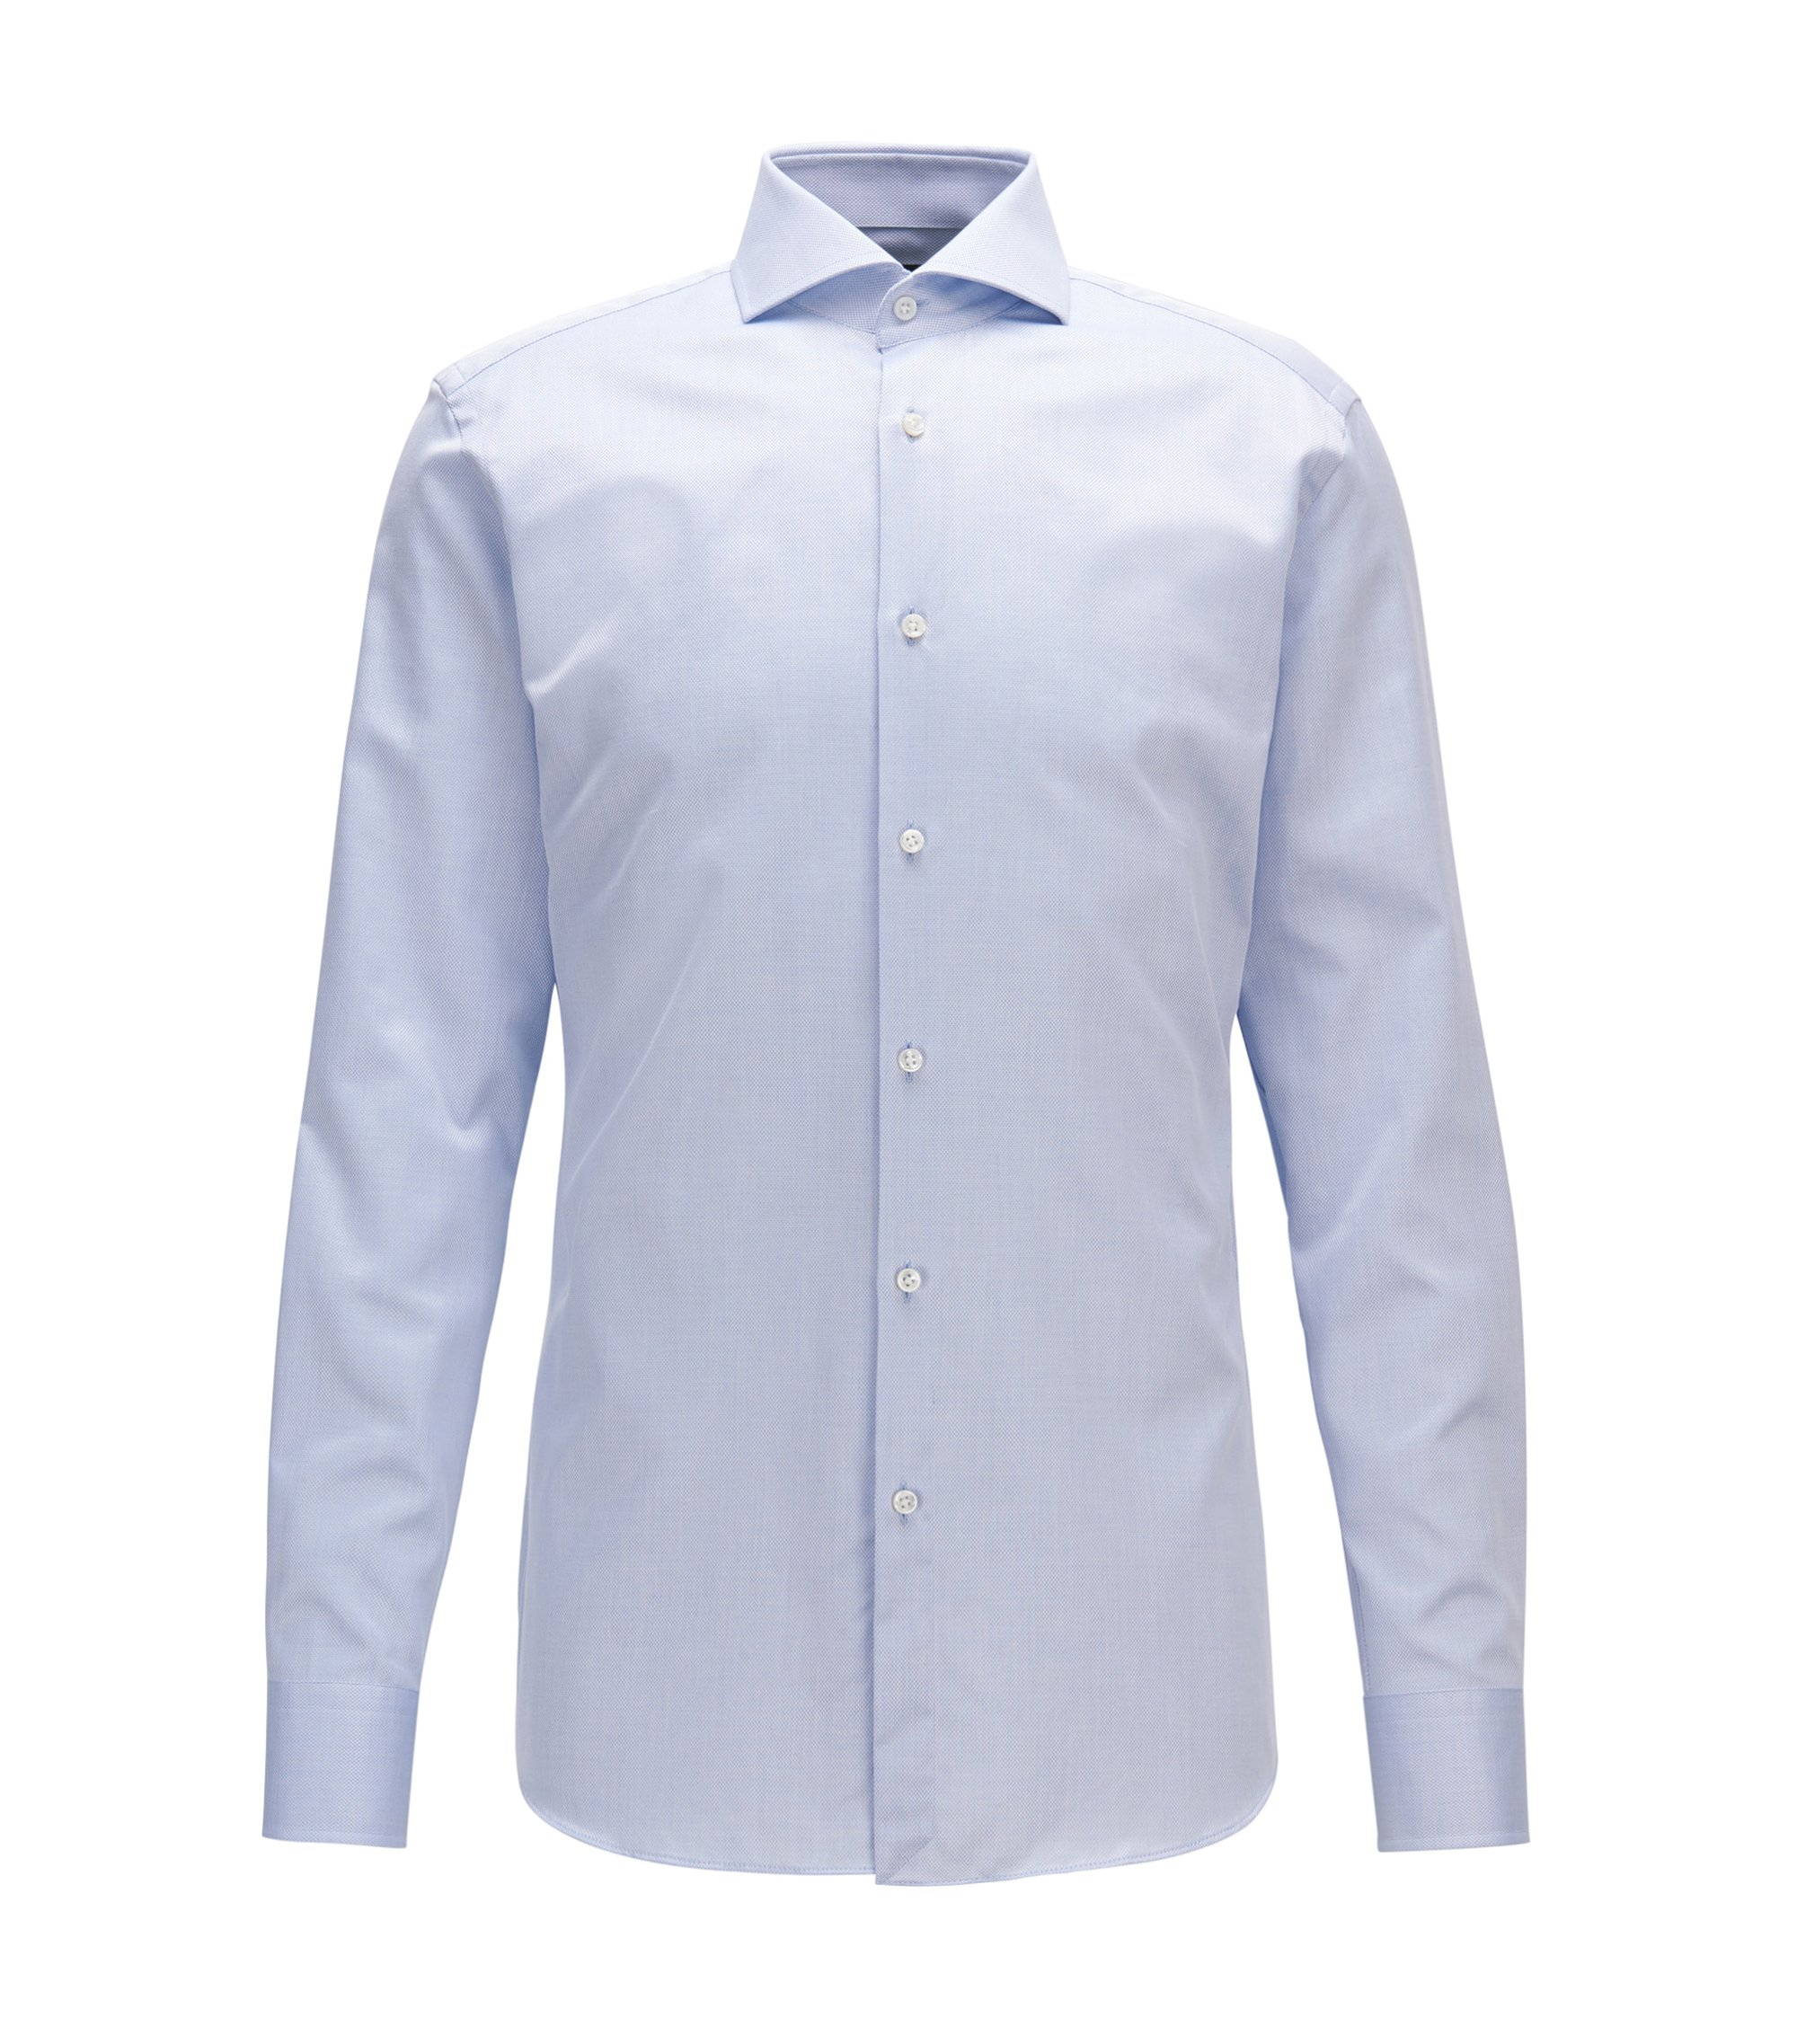 Camicia slim fit in cotone con microlavorazione e con bottoni in madreperla, Celeste